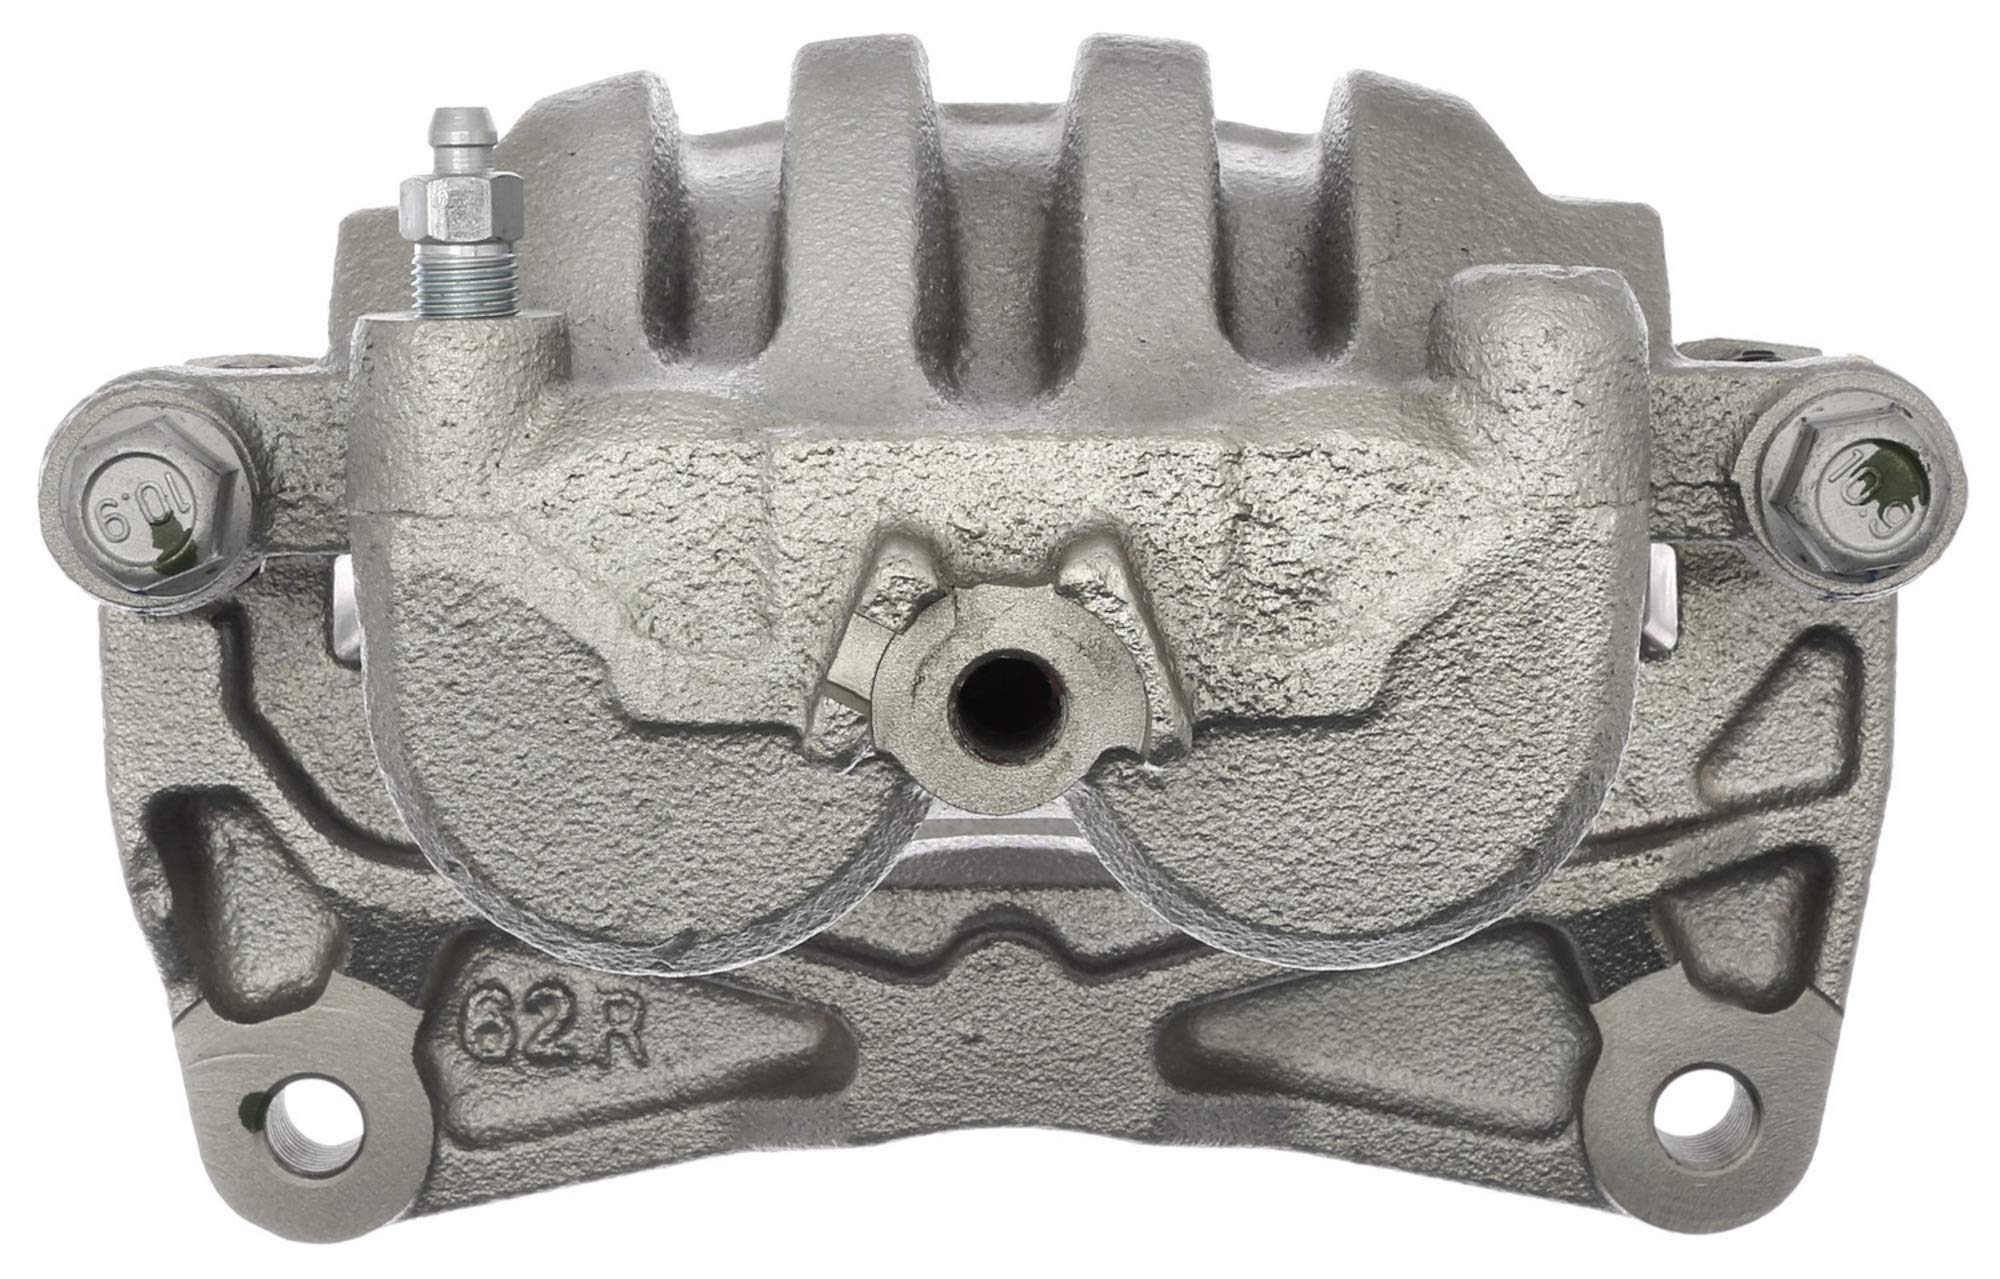 ACDelco 18FR2380C Professional Front Passenger Side Disc Brake Caliper Assembly without Pads (Friction Ready Coated), Remanufactured